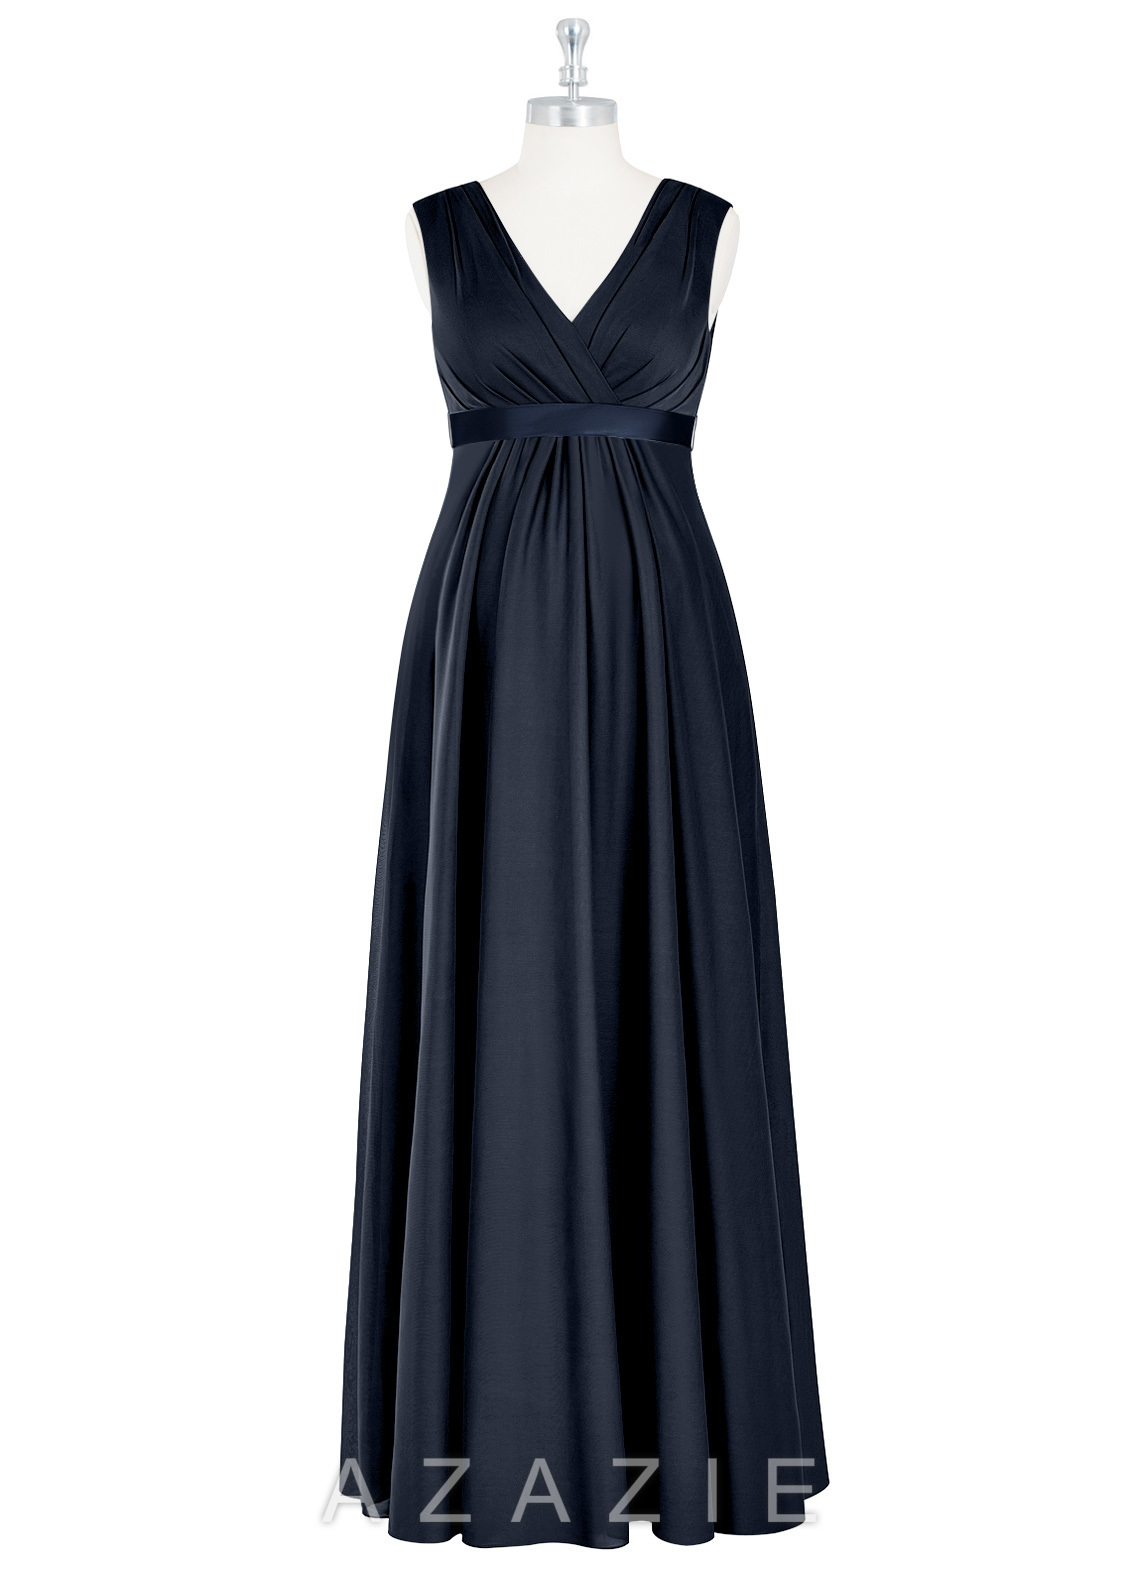 Azazie Angelina Maternity Bridesmaid Dress | Azazie